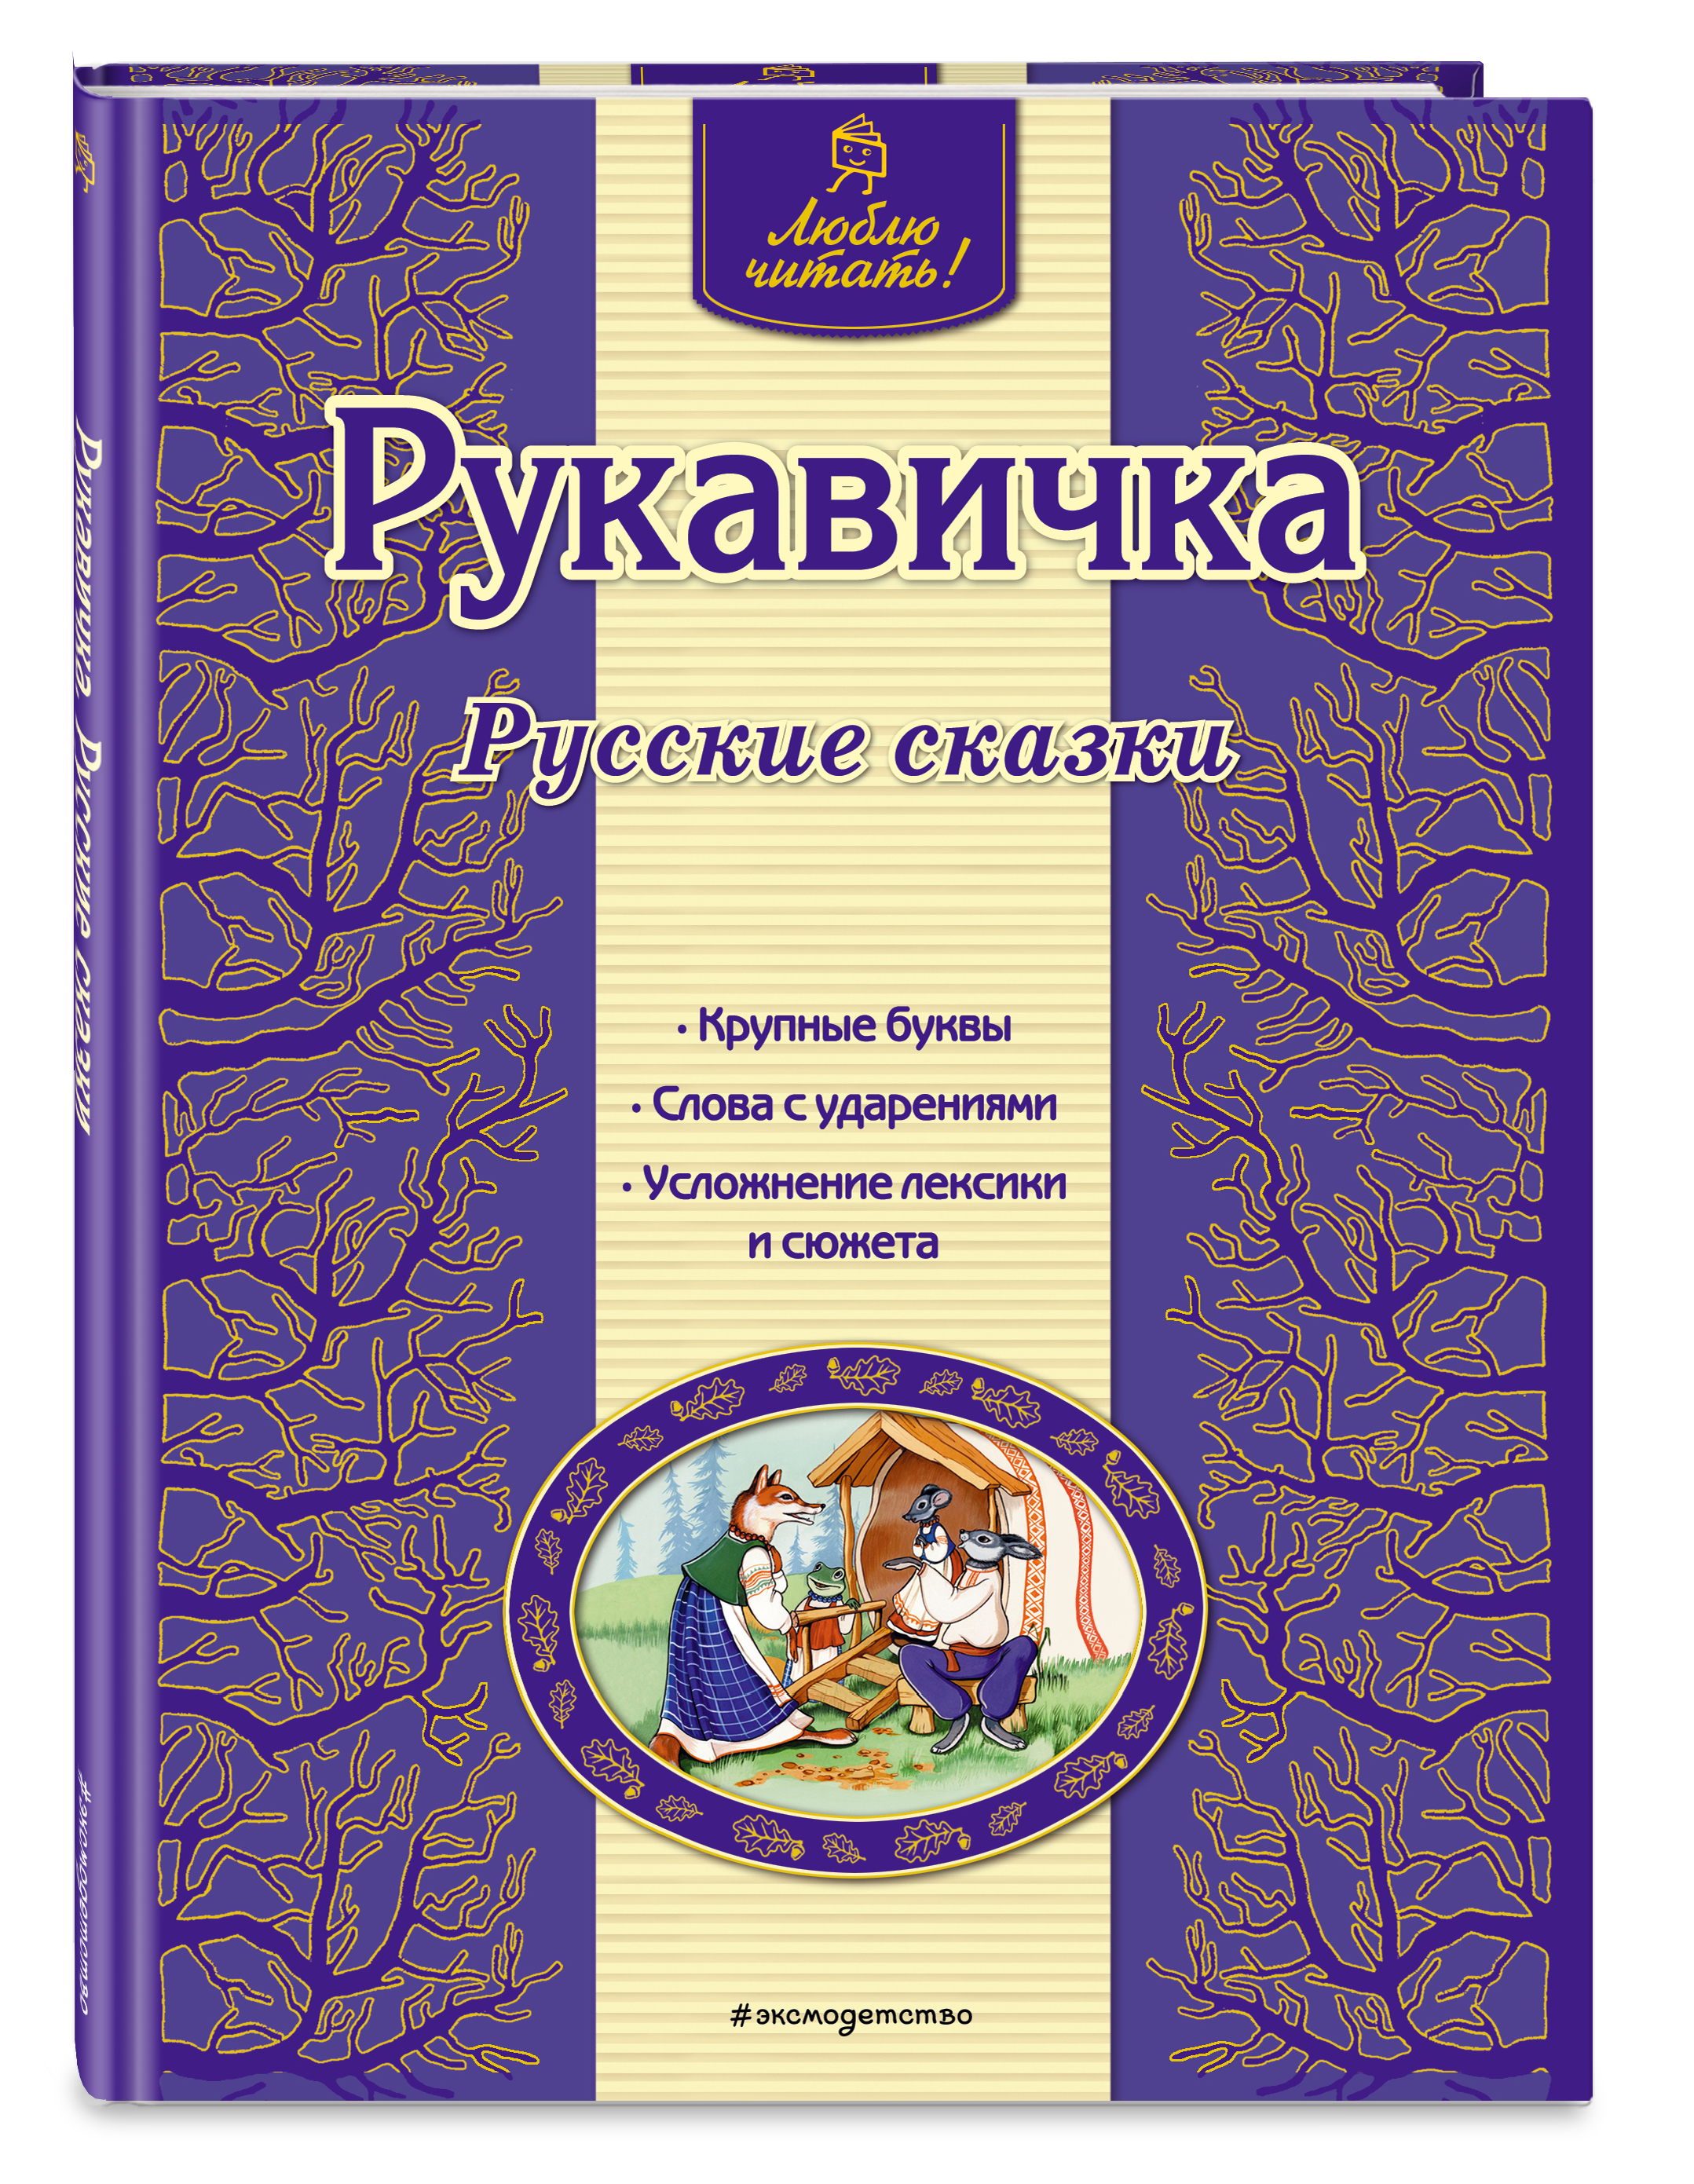 Рукавичка. Русские сказки рукавичка